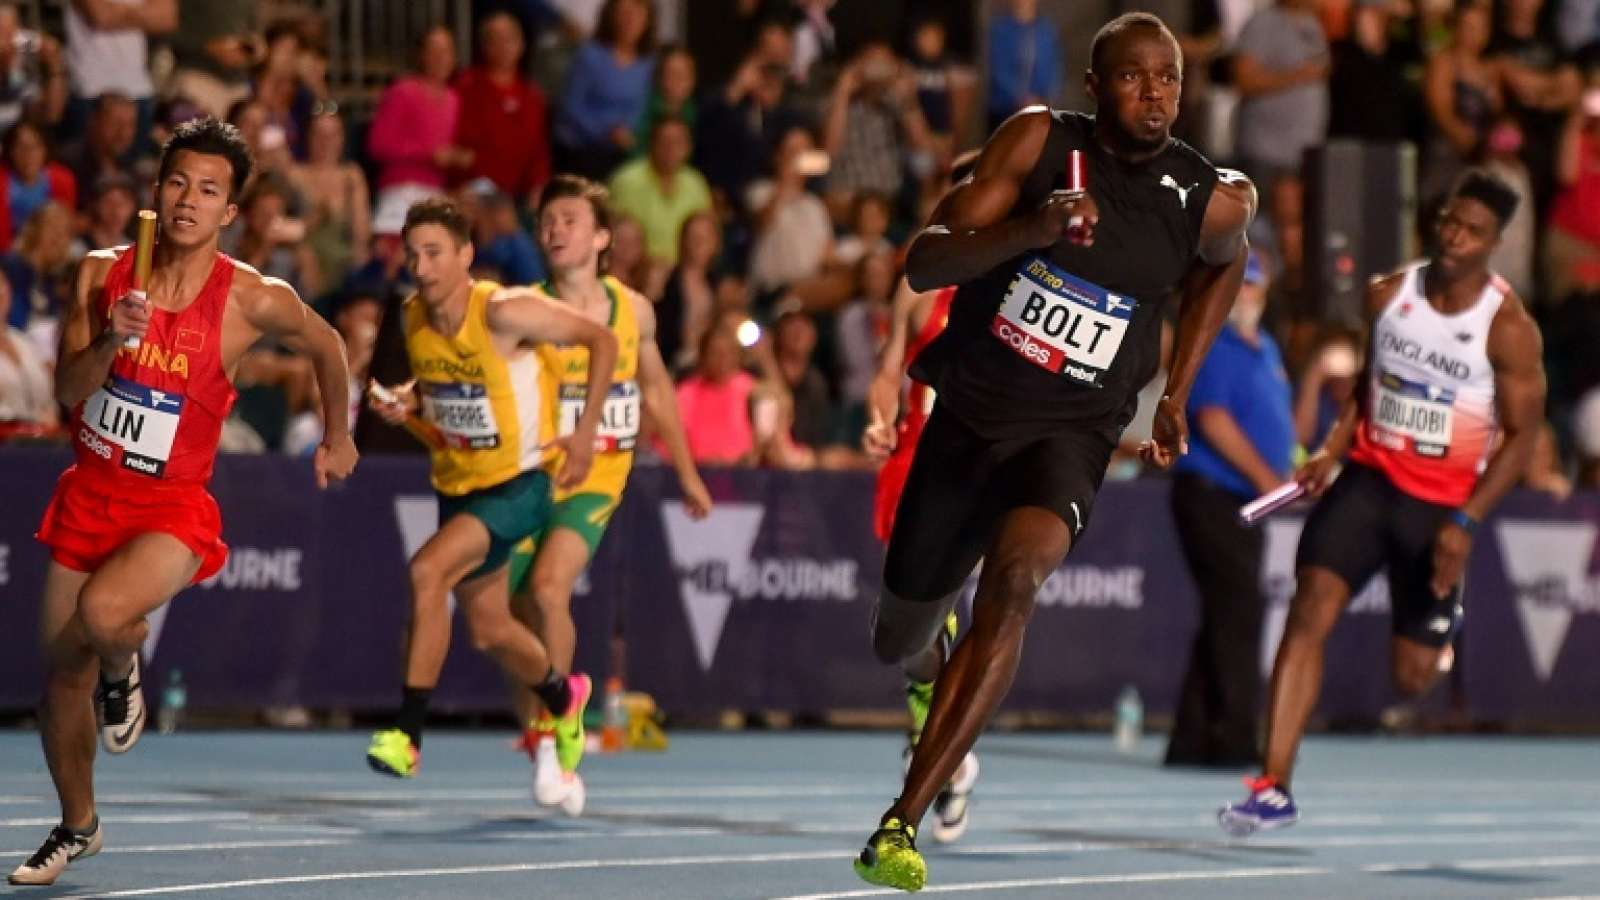 Nigeria's Dedewo sets new 300m record in USA